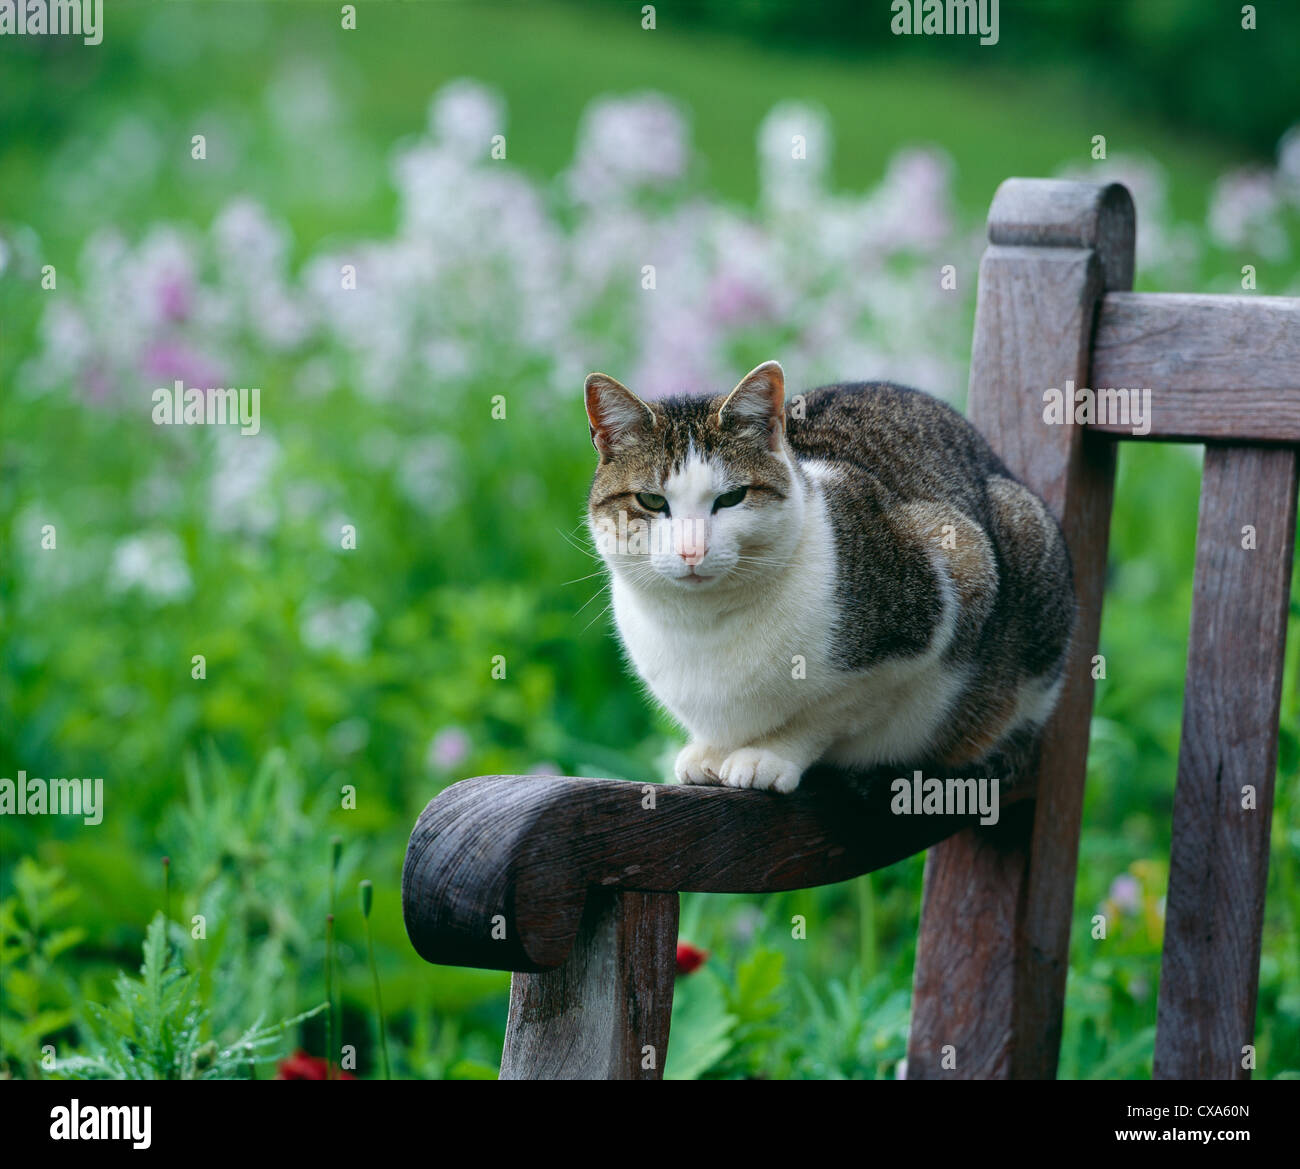 Astounding Tabby Cat On Garden Bench Pennsylvania Stock Photo Inzonedesignstudio Interior Chair Design Inzonedesignstudiocom